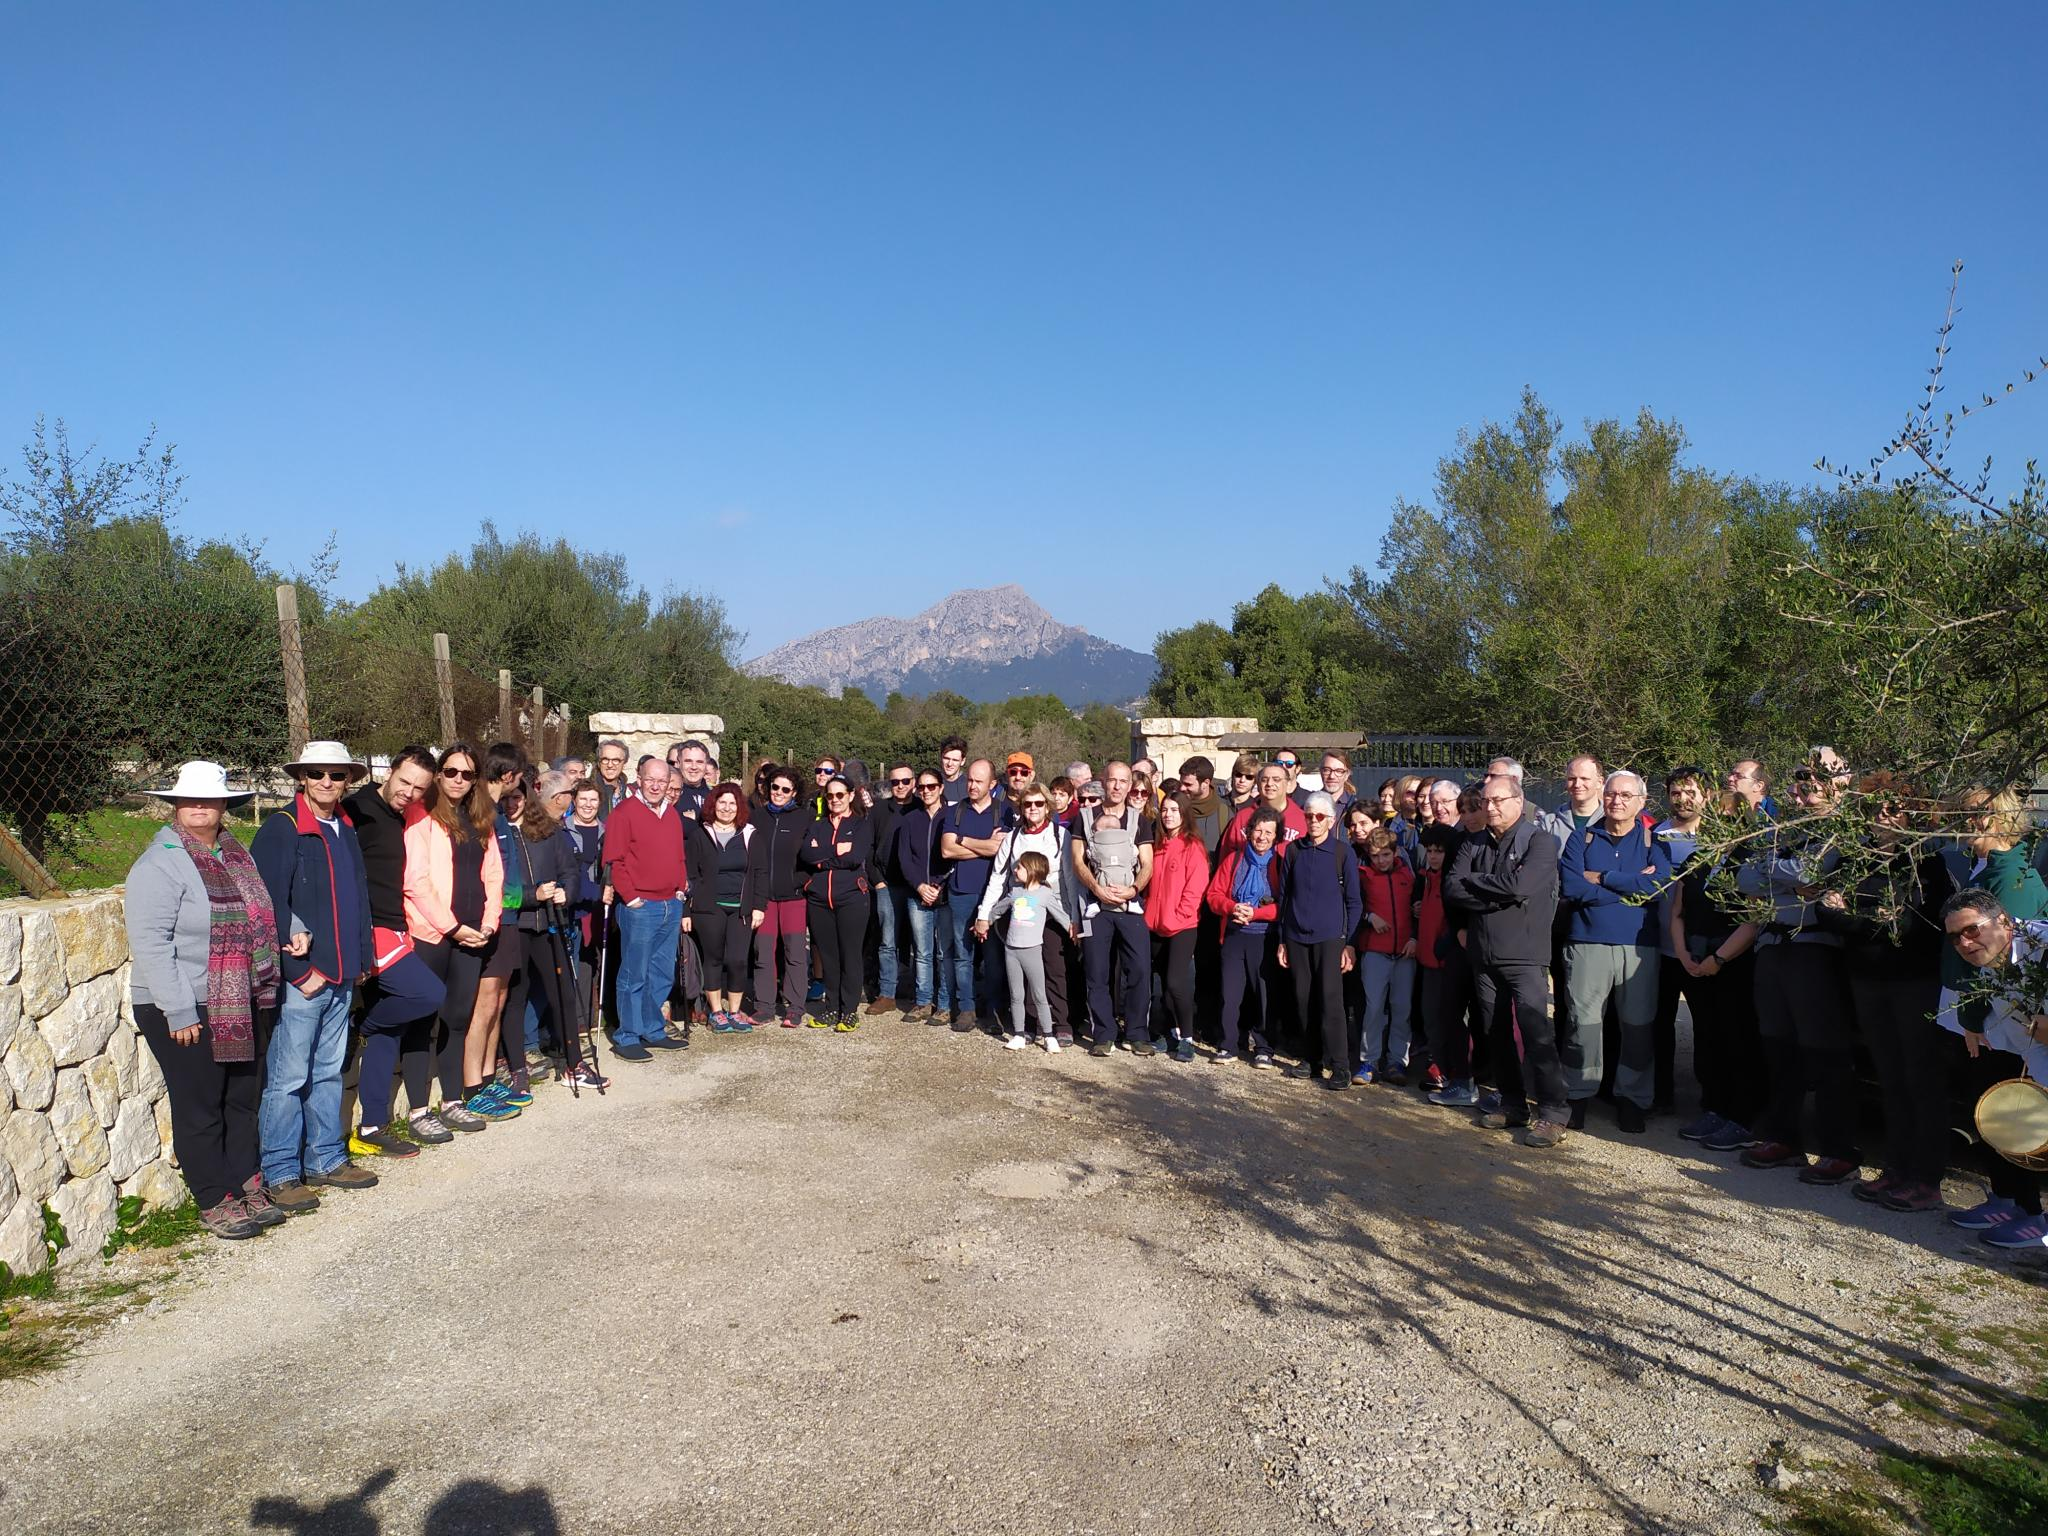 Tributes were paid to Spanish Civil War victims in Puigpunyent